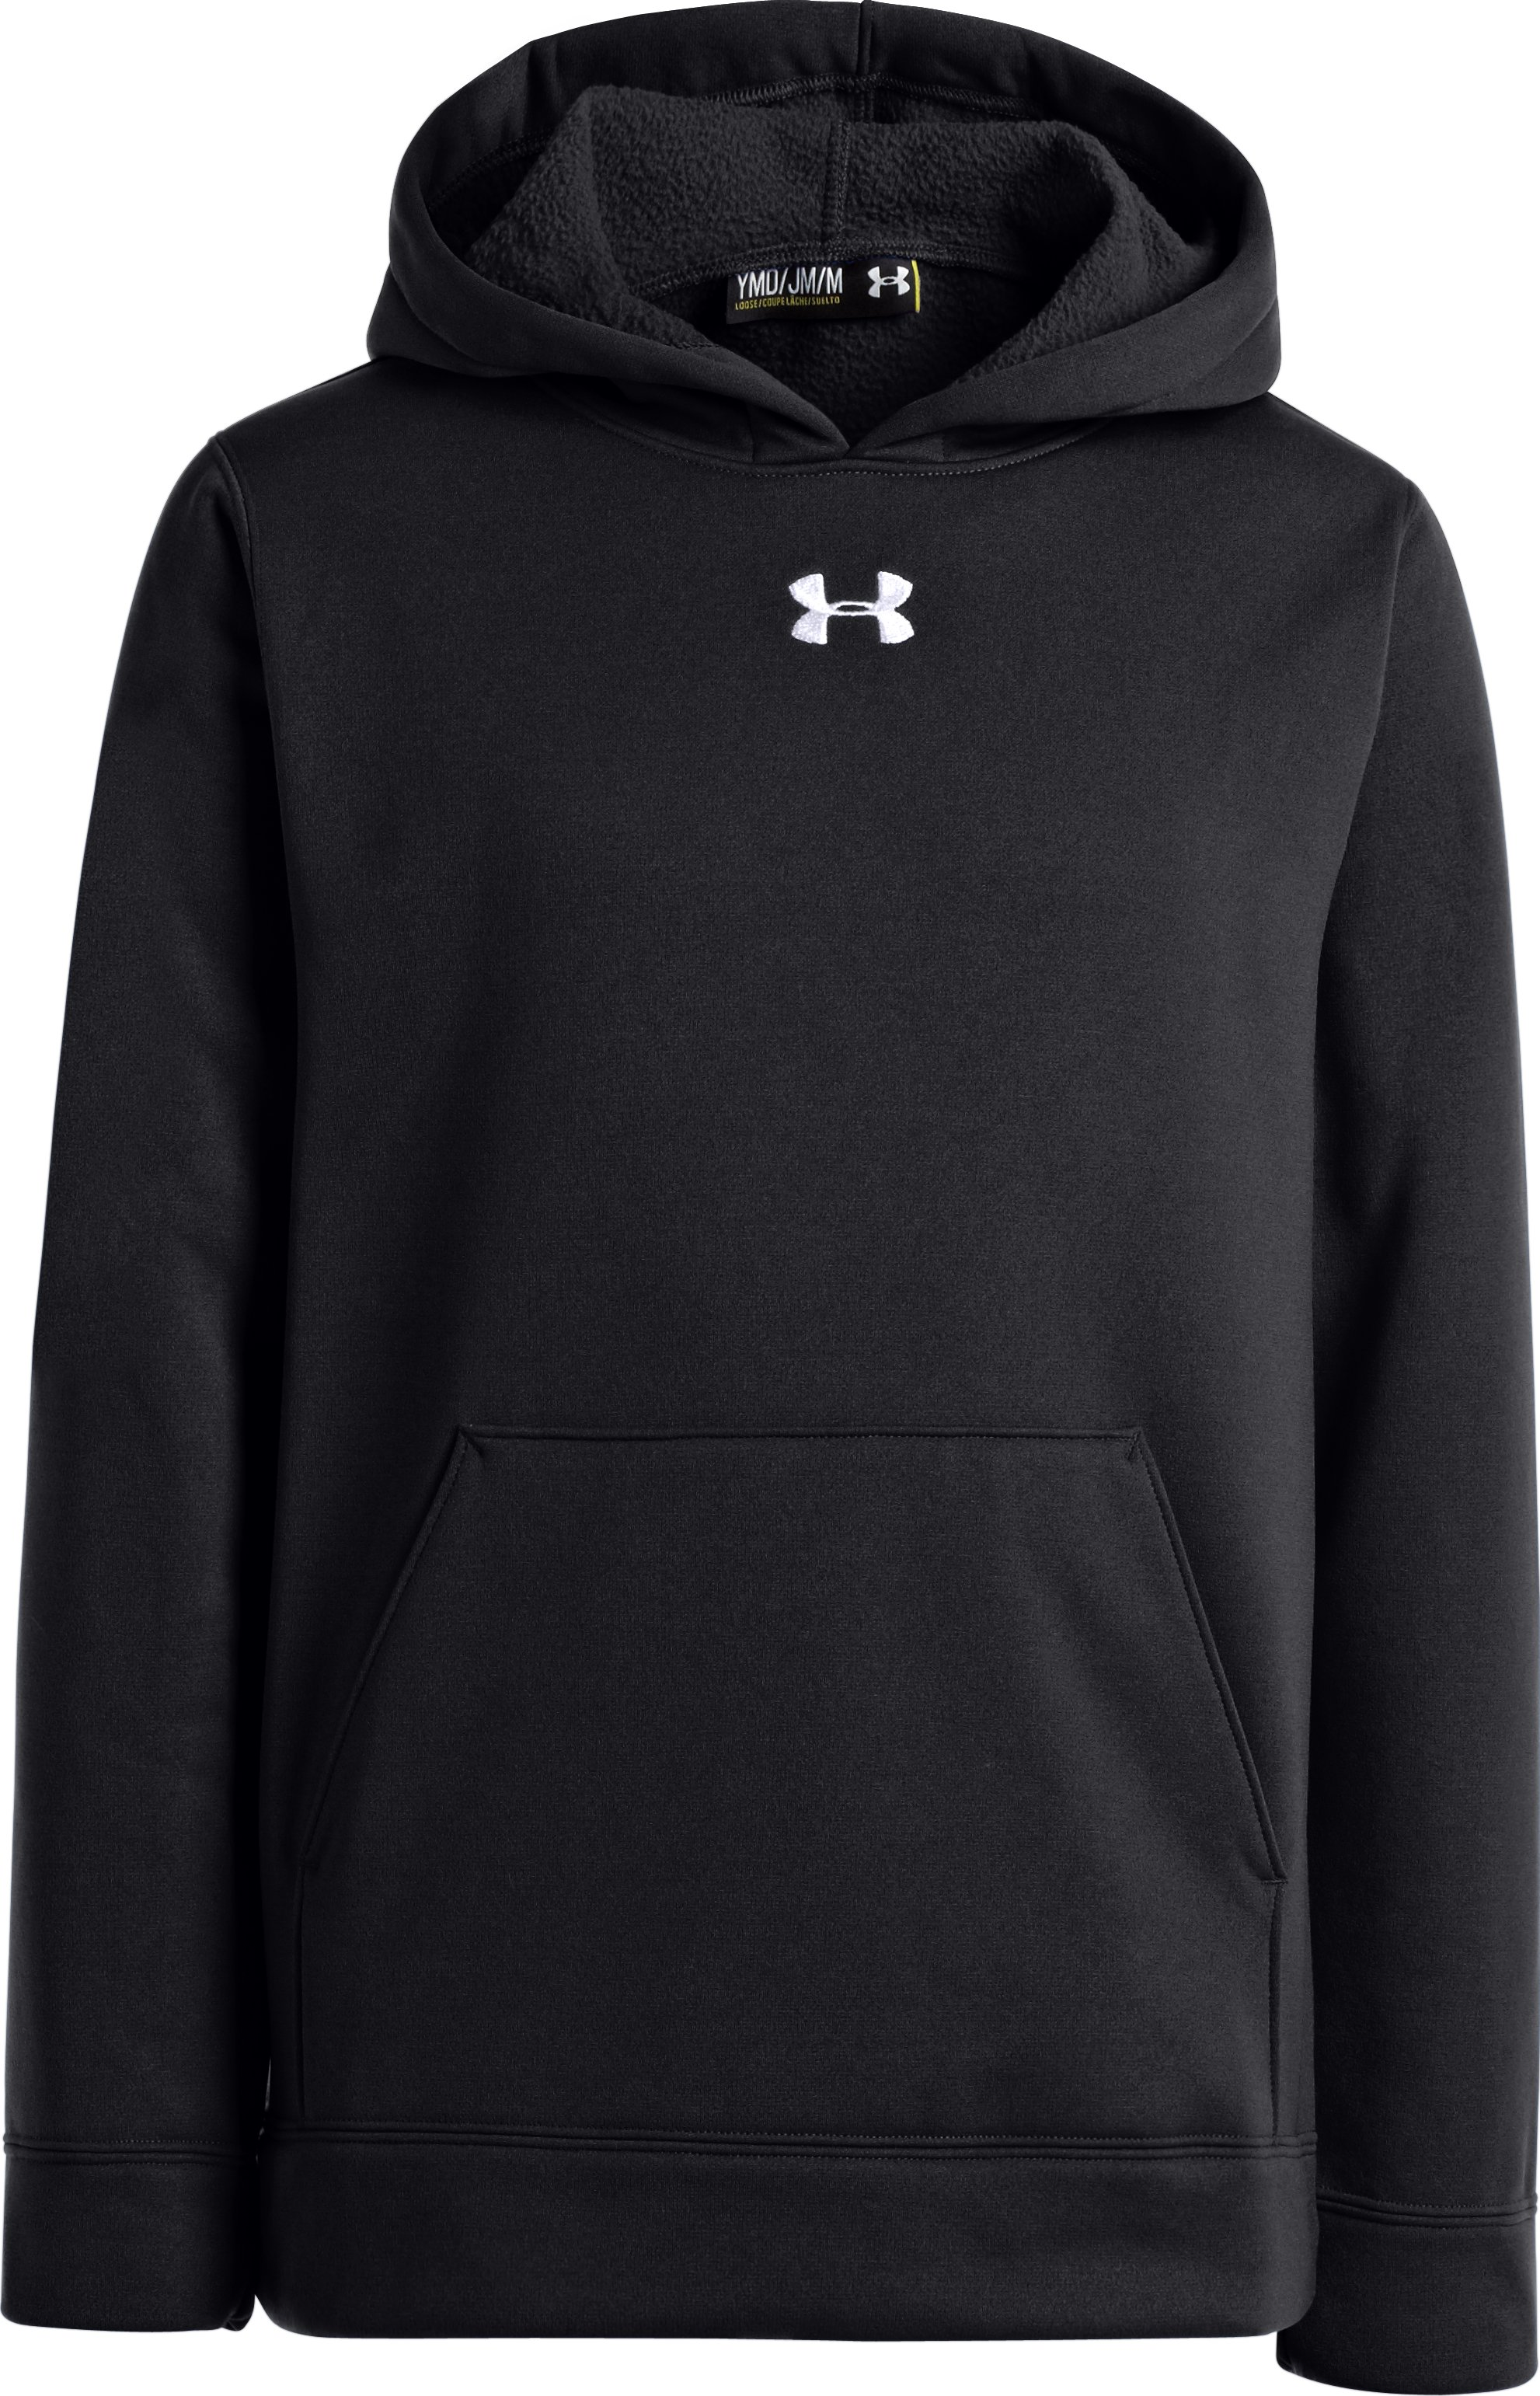 Boys' Armour® Fleece Storm Team Hoodie, Black